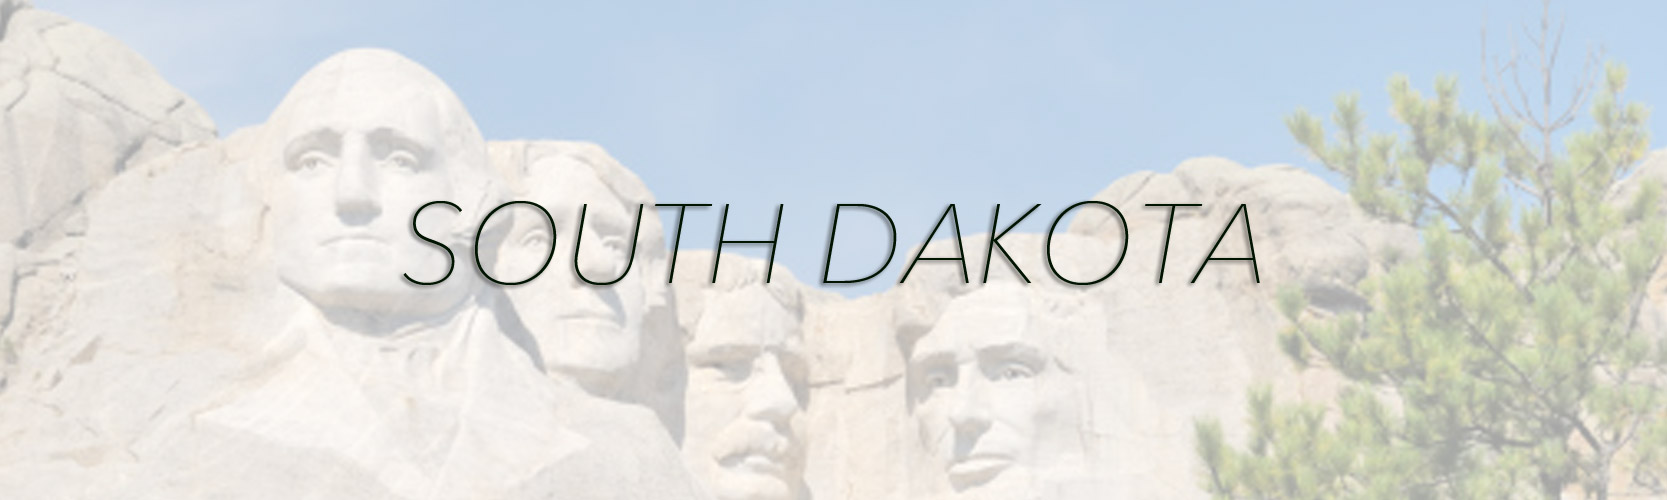 Shipping Futons, Sofa Beds, and Other Futon Shop products to South Dakota